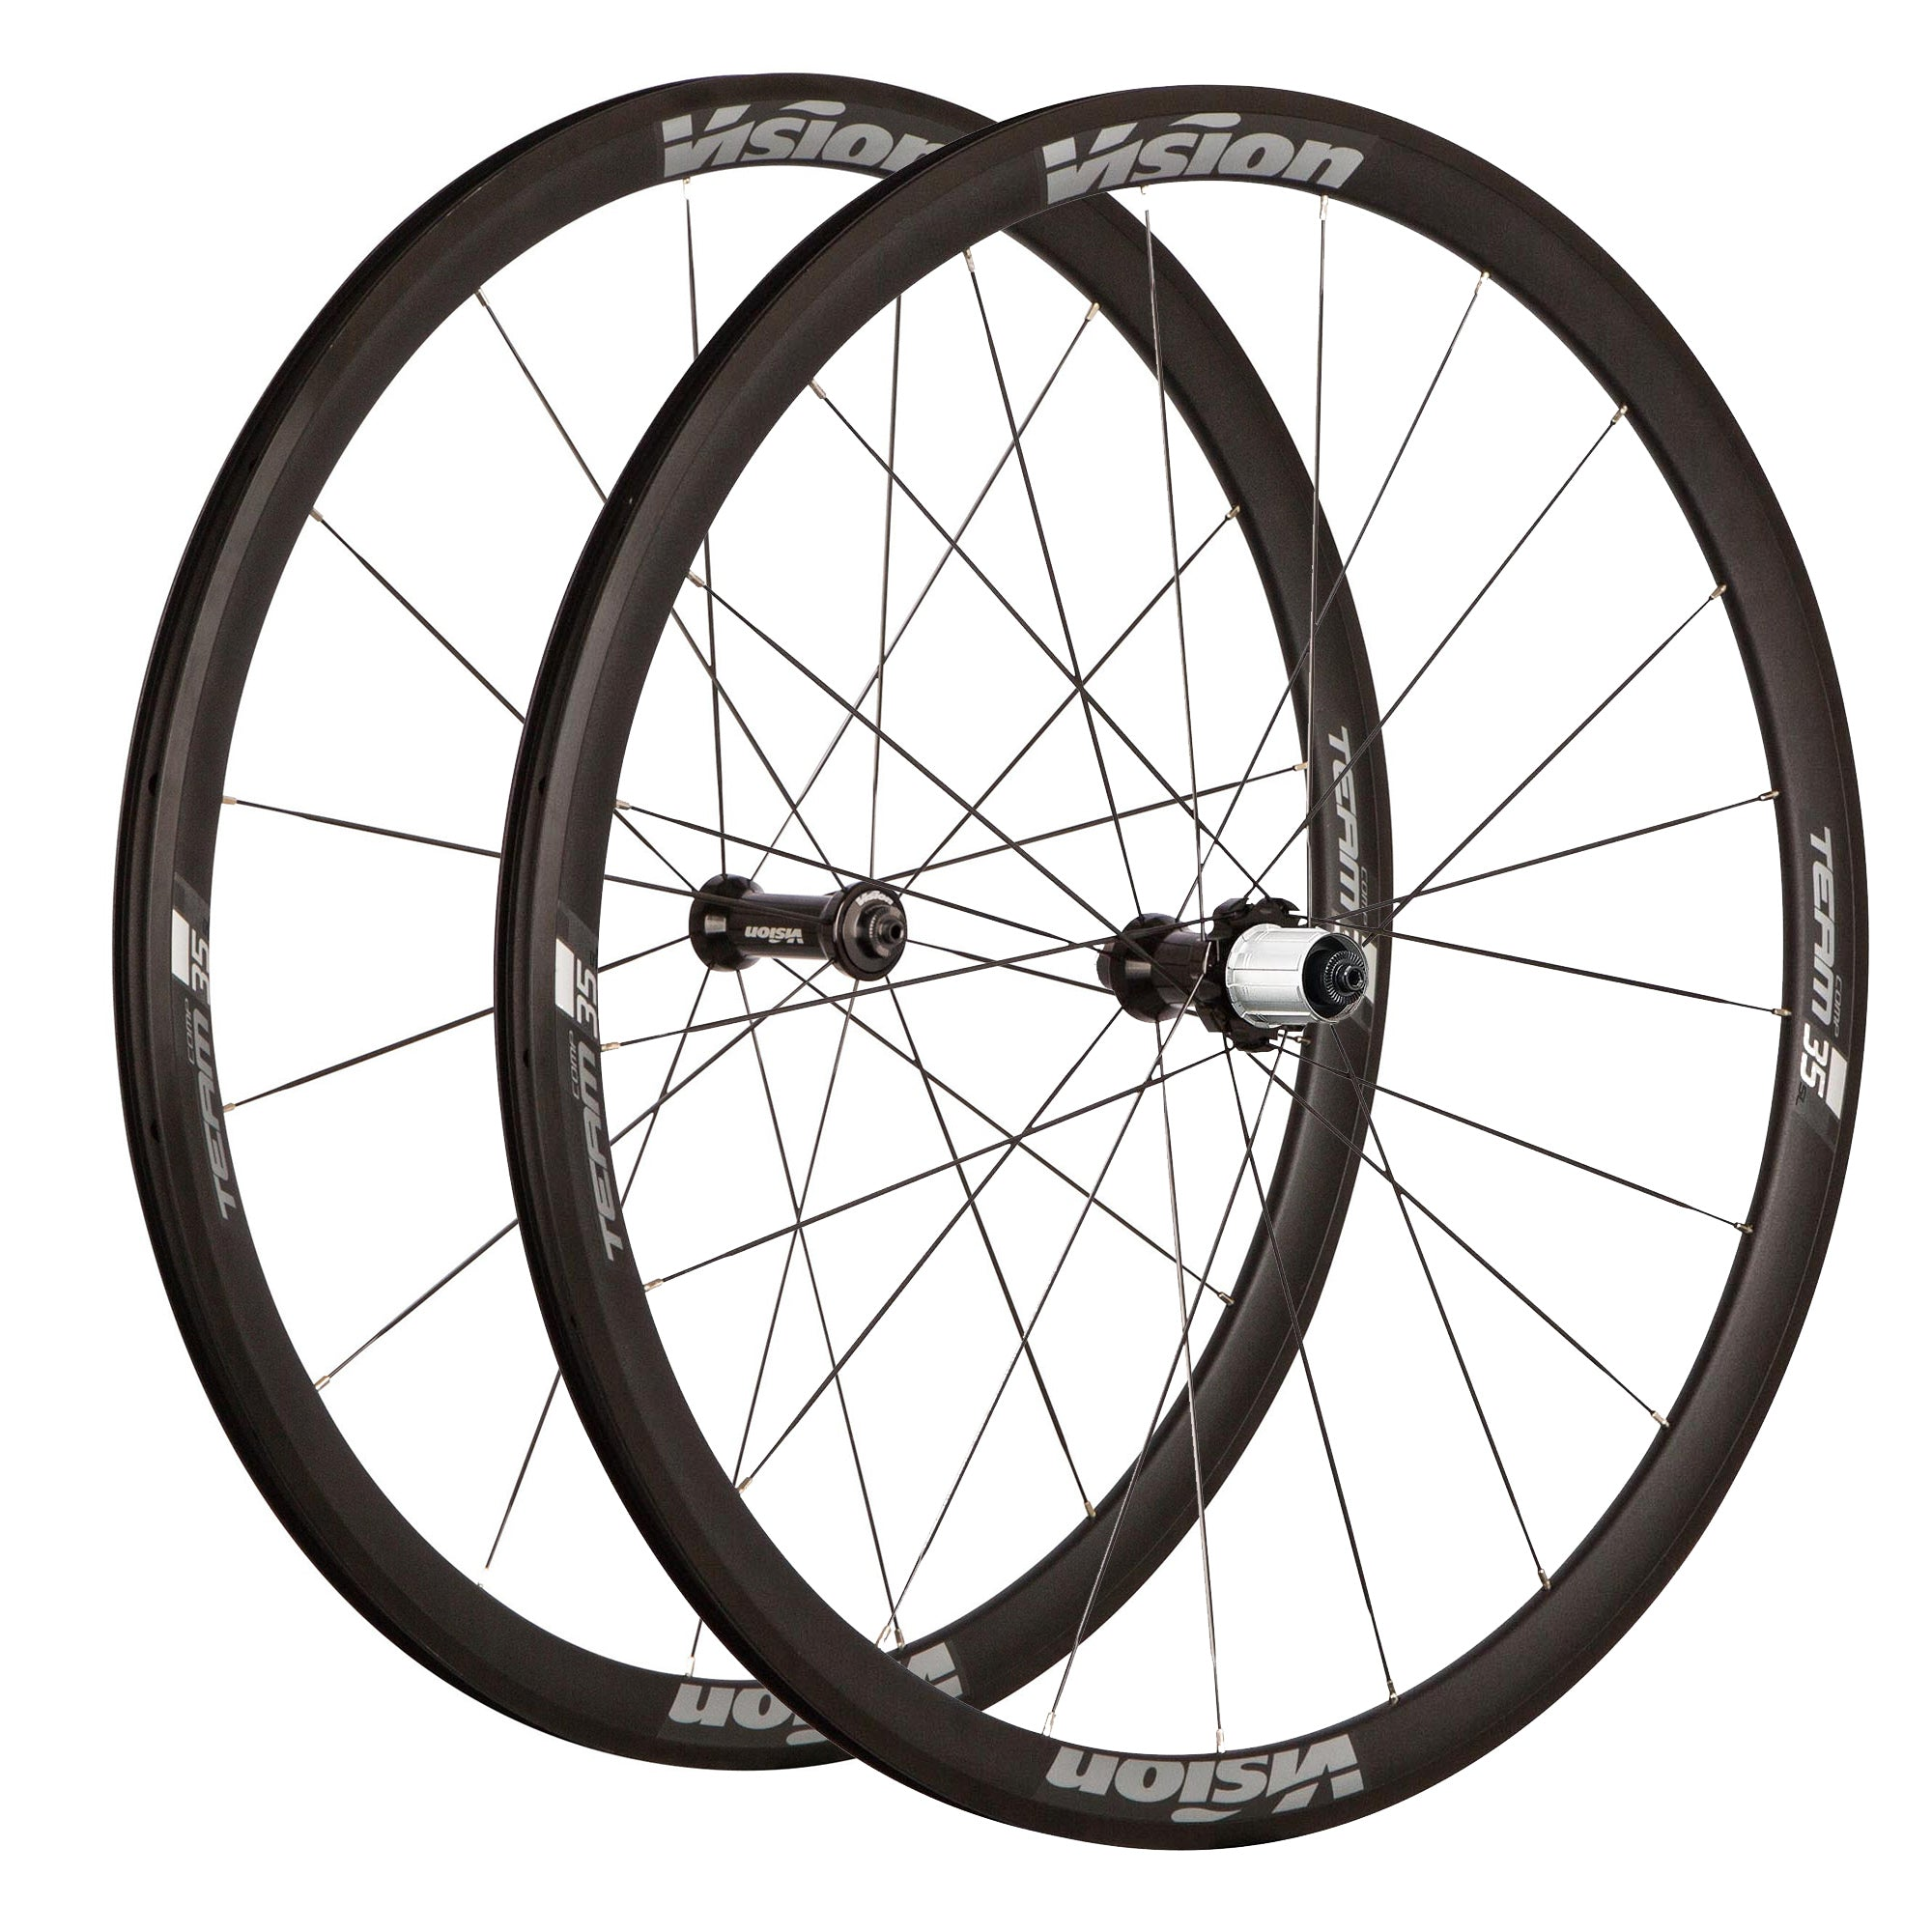 Vision Team35 Comp Wheelset - Rim brake